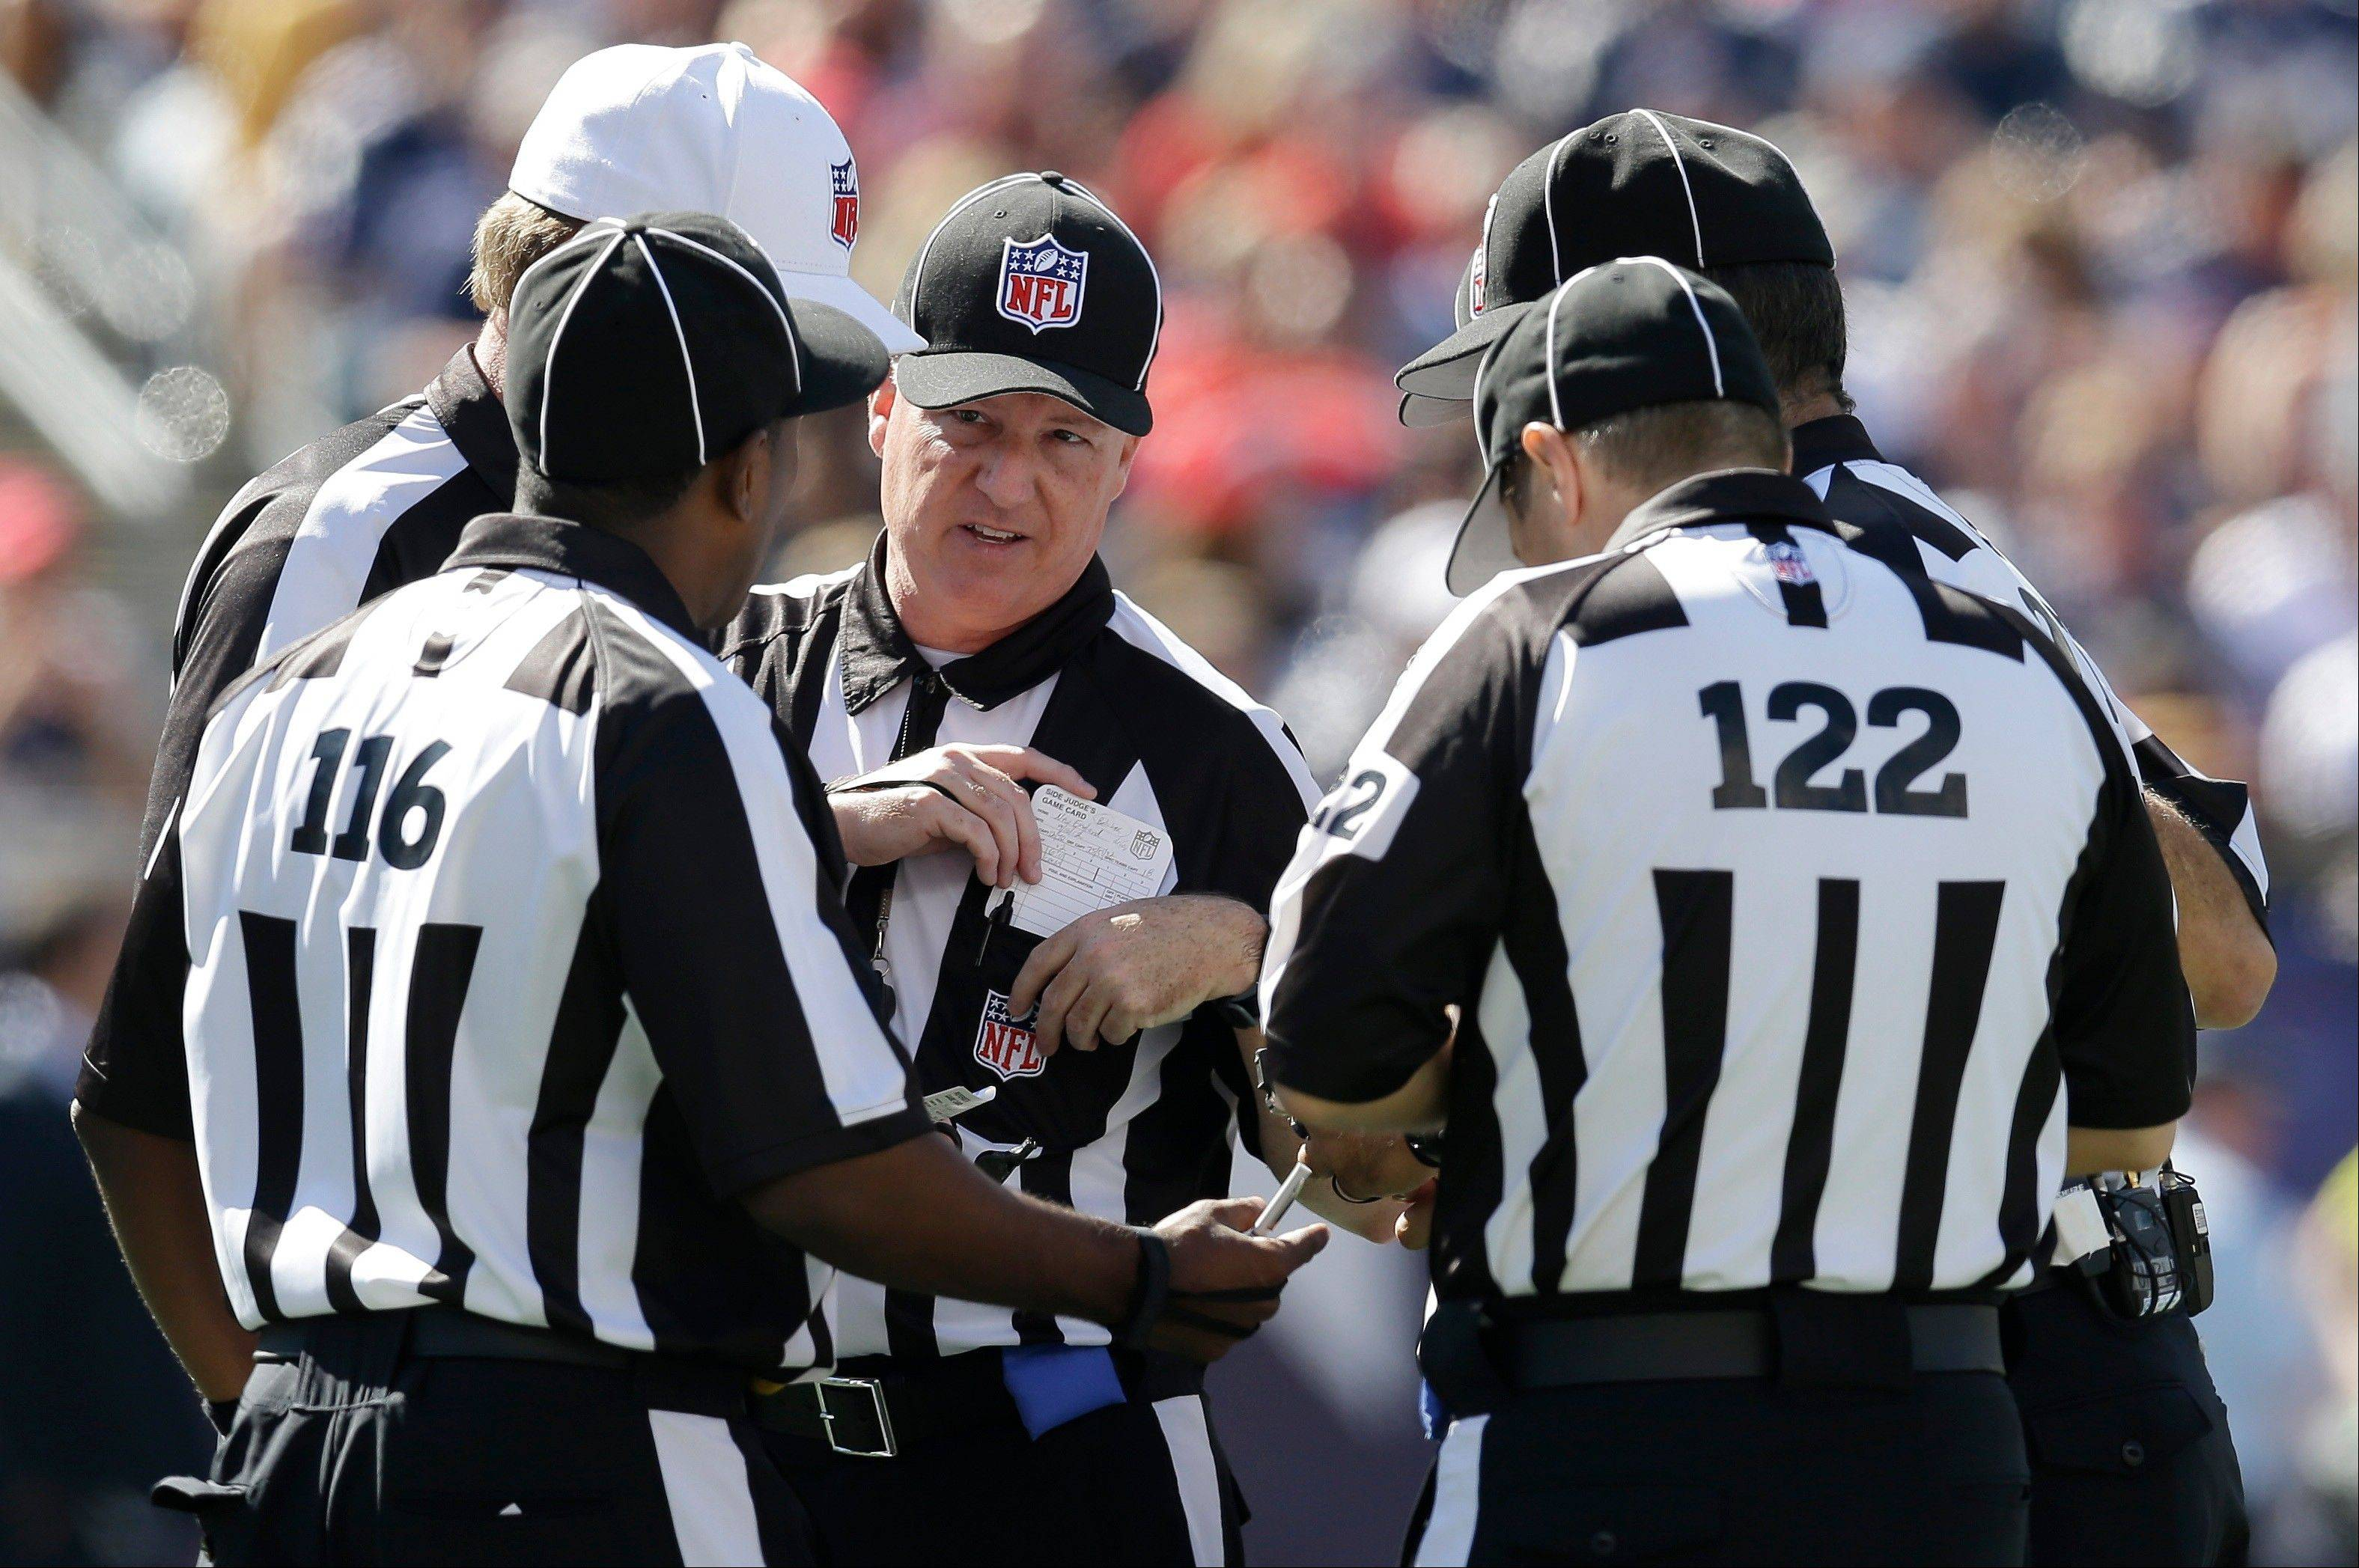 Thanks to replacement officials constantly huddling to talk things over, NFL games are dragging on and on, says Bob LeGere, who wants Commissioner Roger Goodell to settle the contract dispute with union officials.